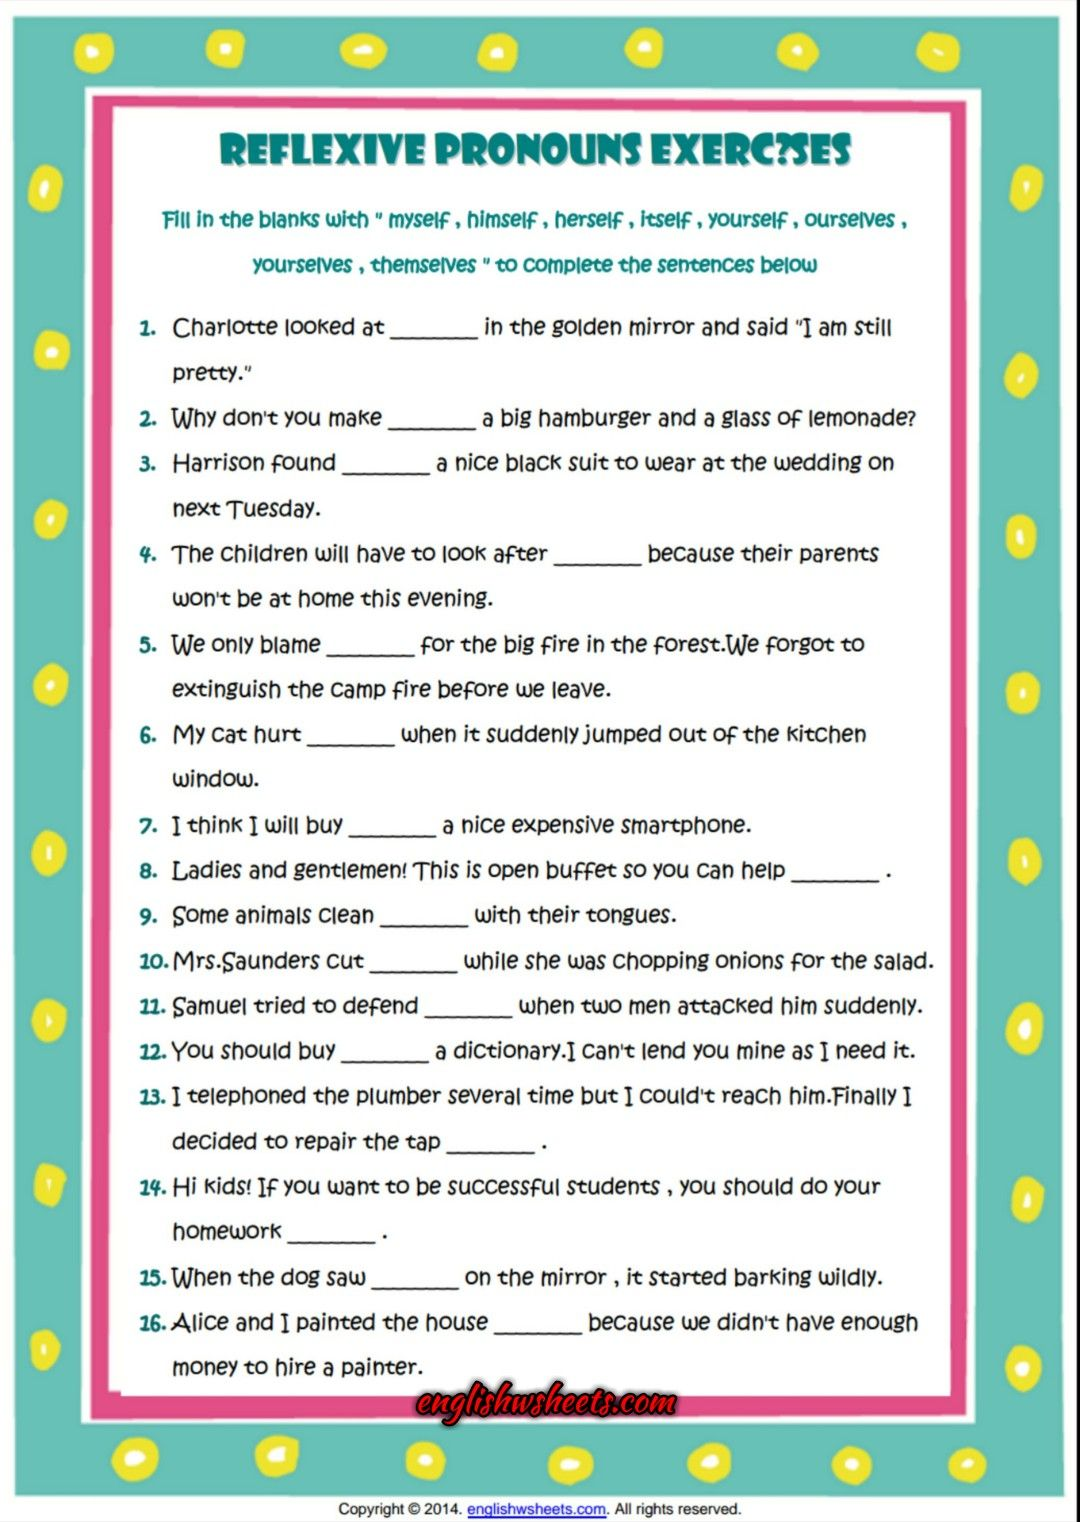 medium resolution of Reflexive Pronouns ESL Grammar Exercise Worksheet   Reflexive pronoun